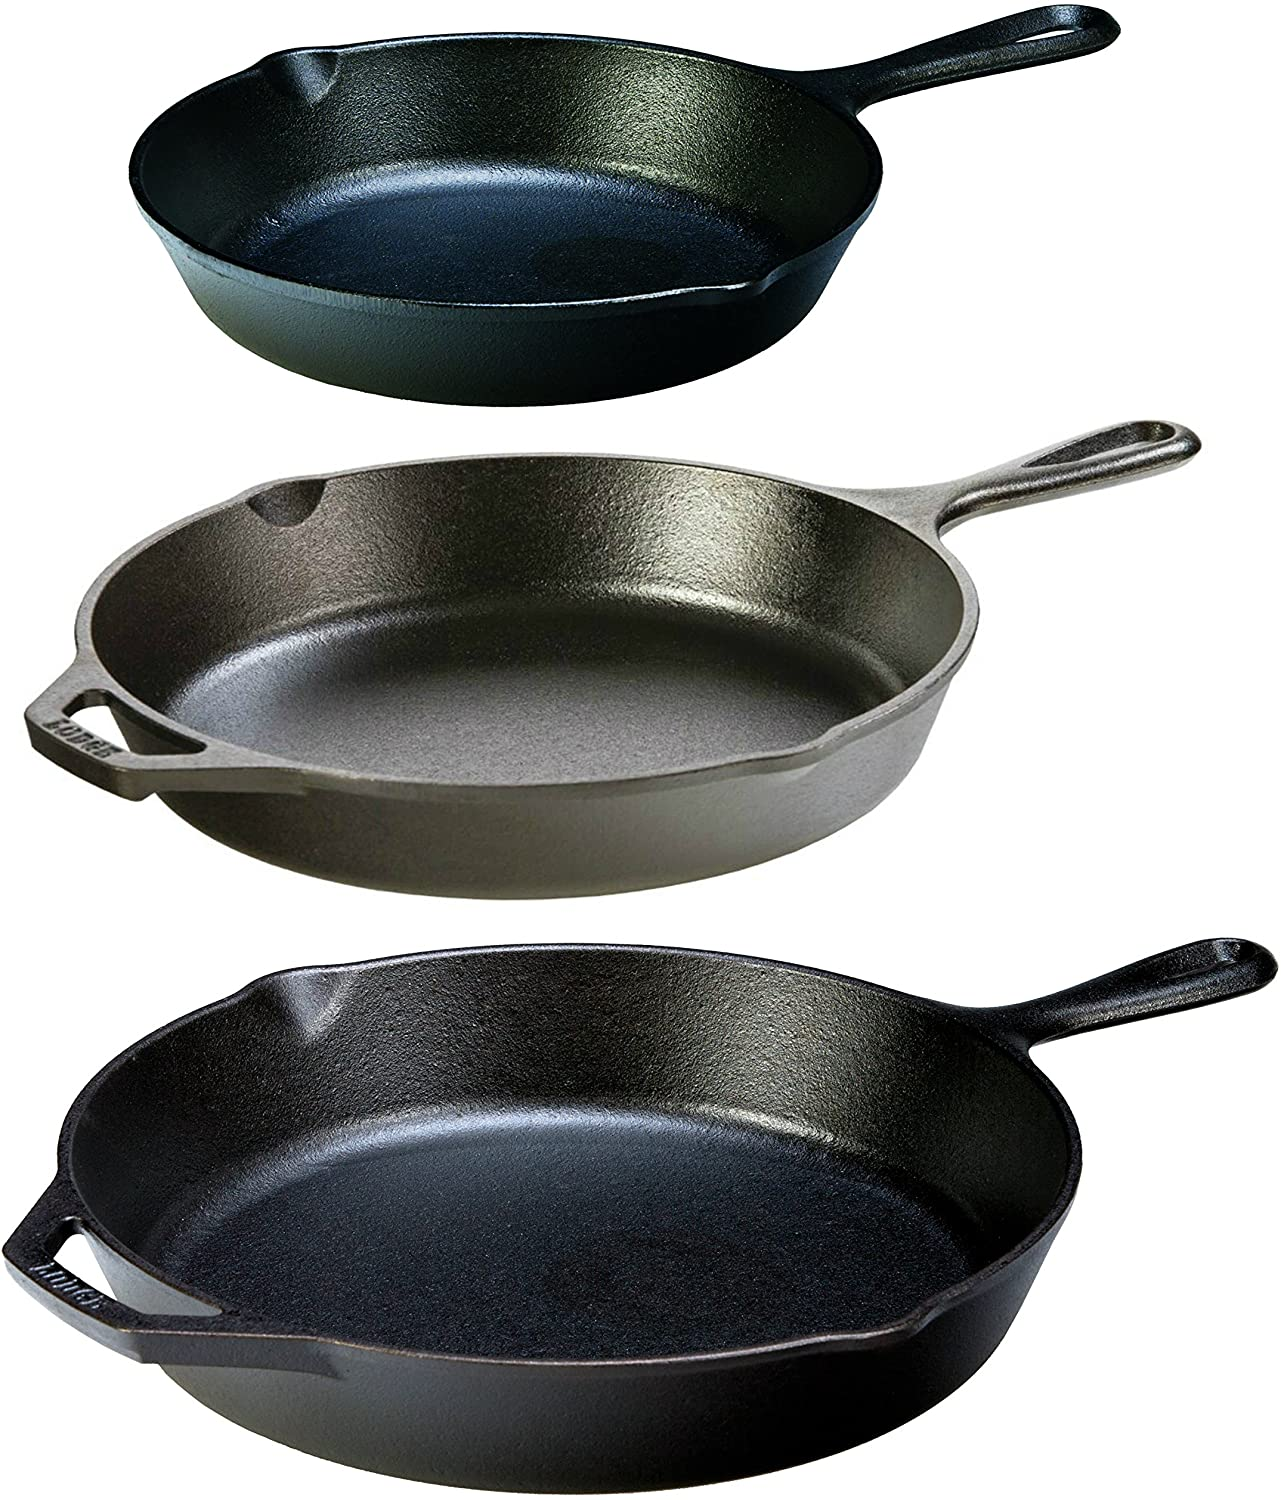 Image of Cast Iron Skillet